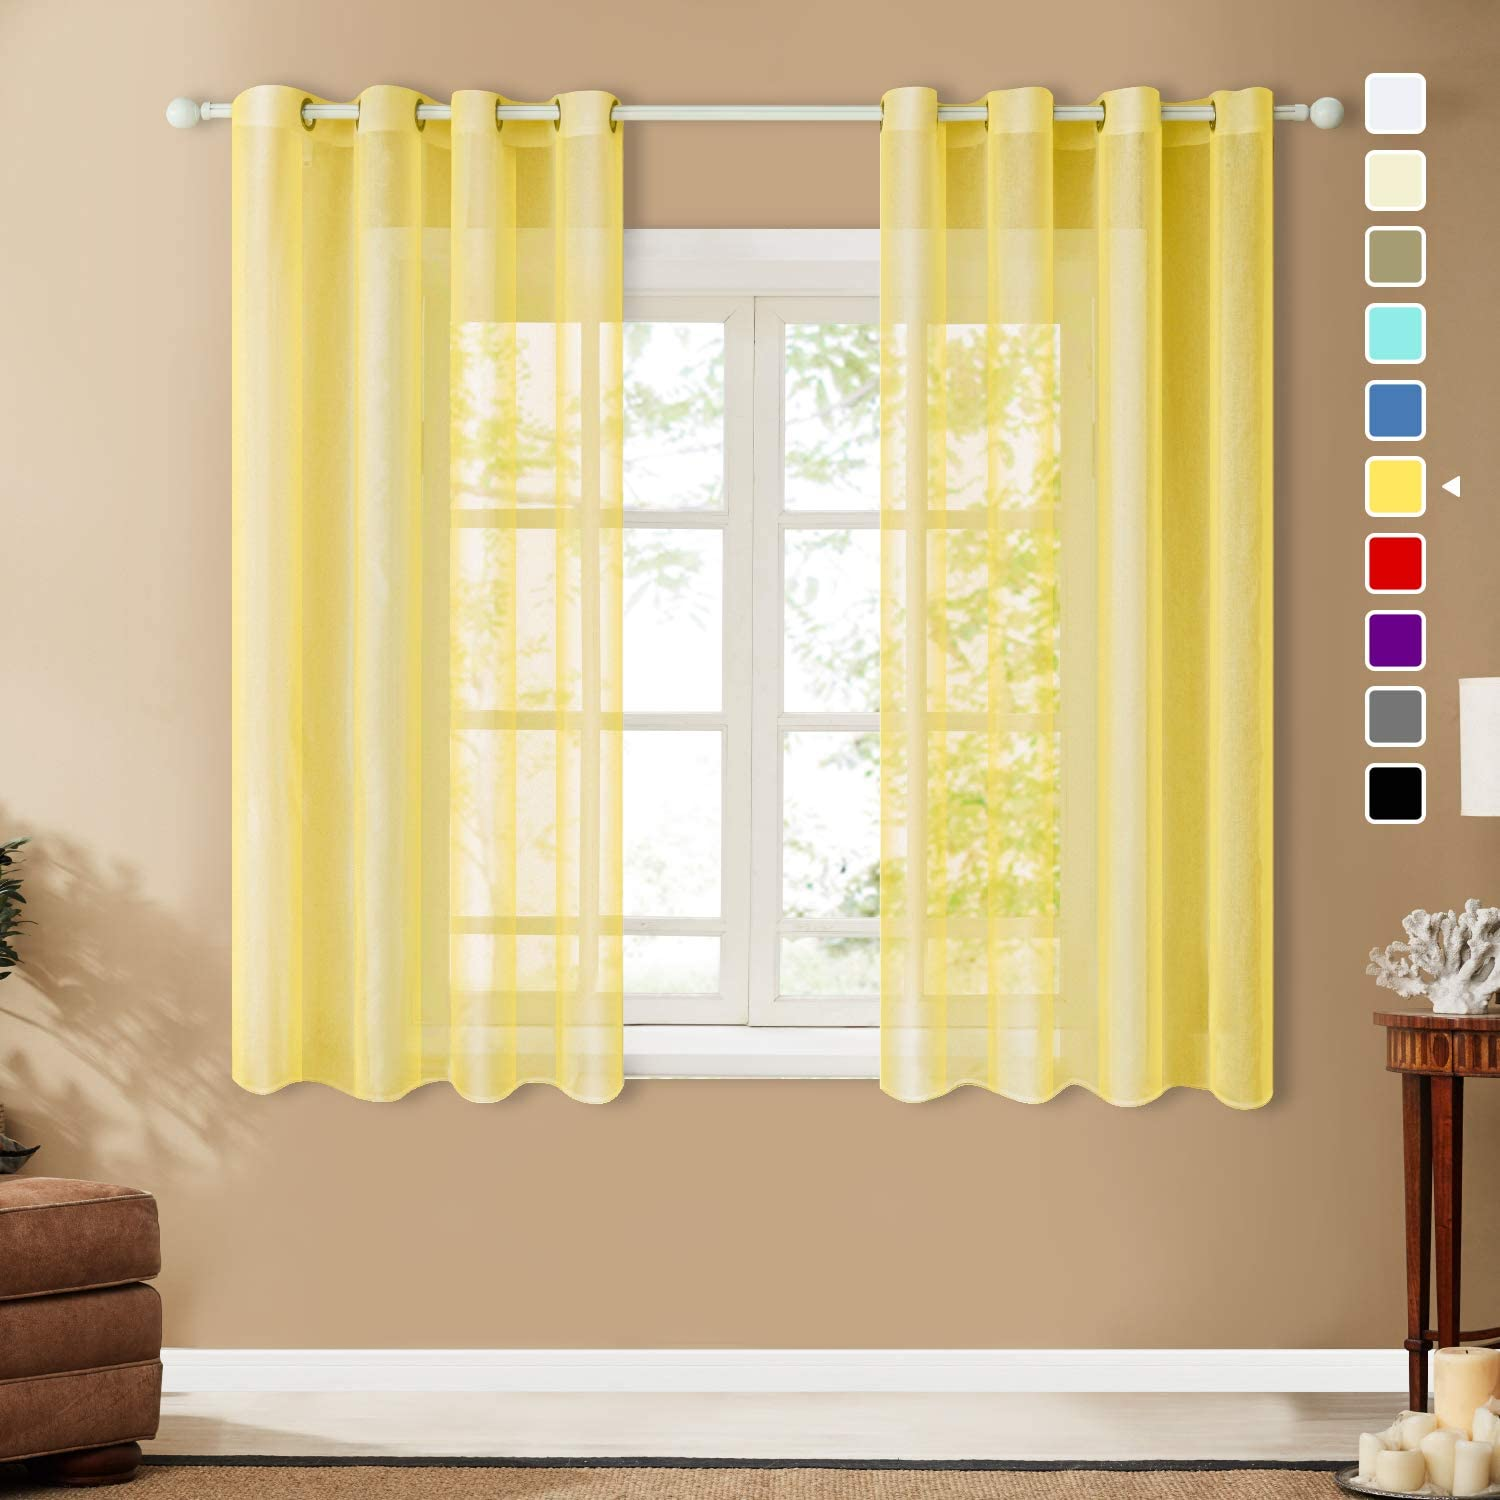 Top Finel Grommet Sheer Curtains 54 Inch Length for Bedroom Living Room Small Window, Yellow, 2 Panels